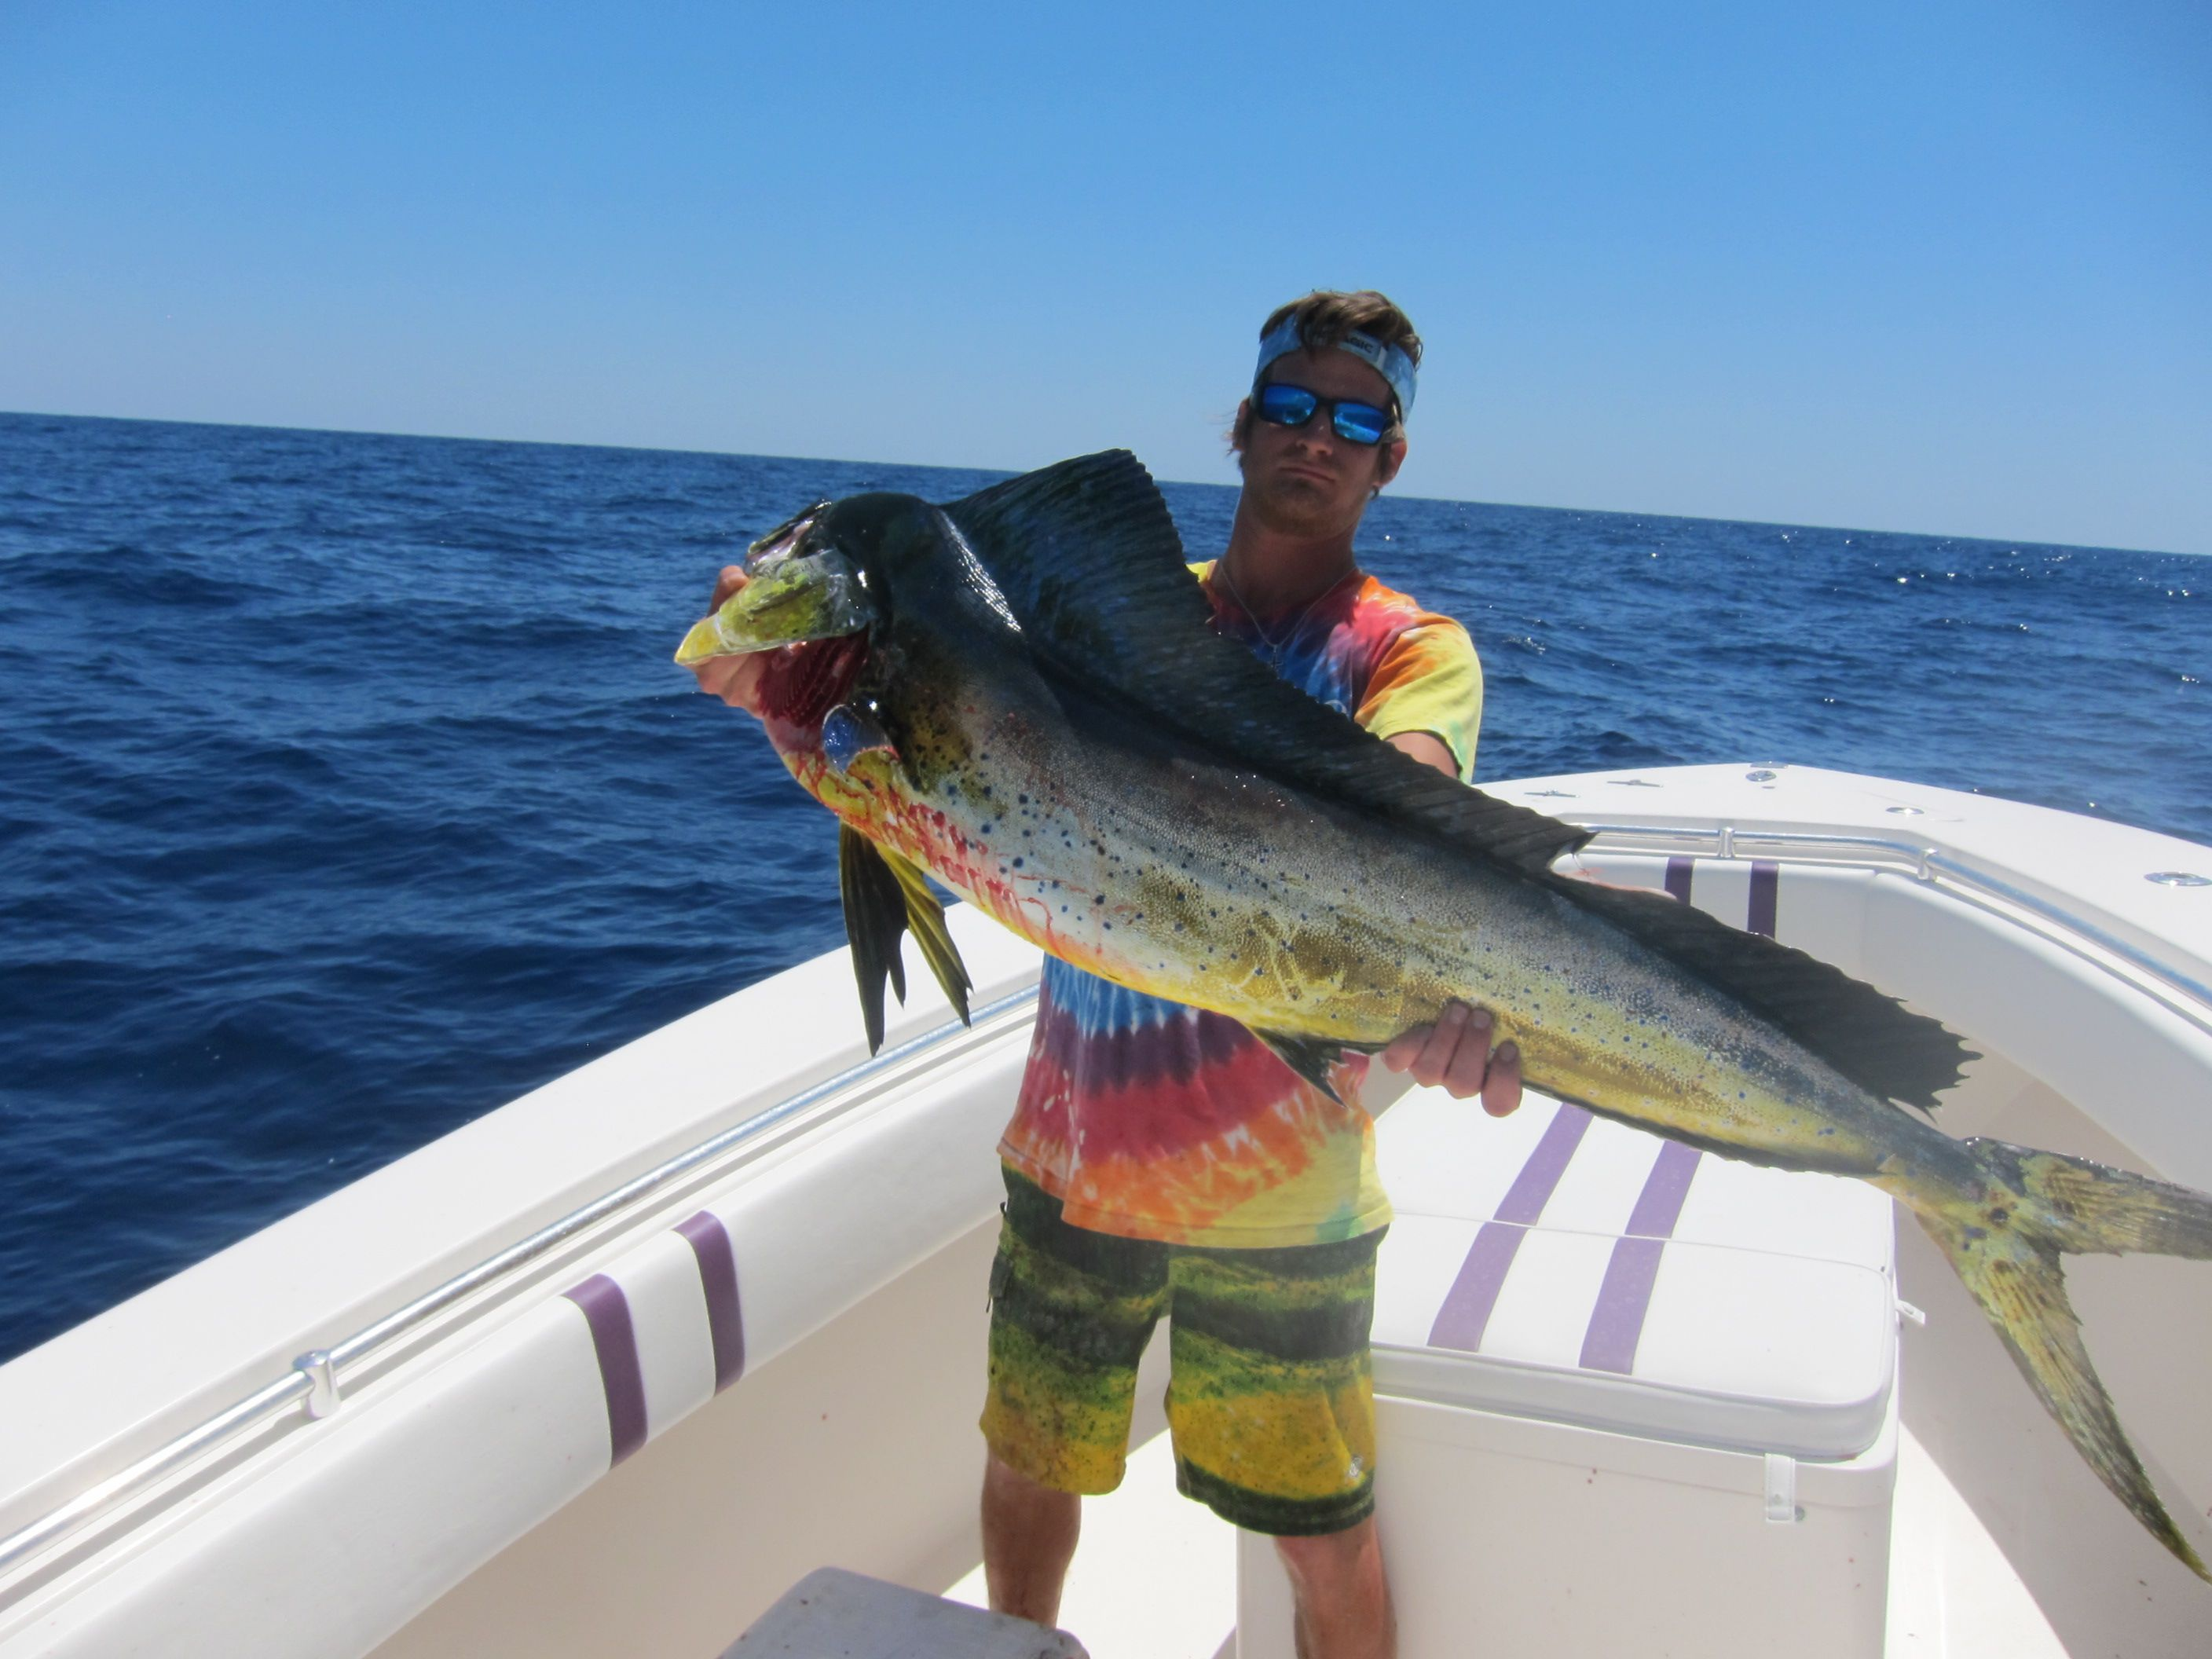 Awesome #mahi from the #offshore trip this weekend #AnglingLaboratory